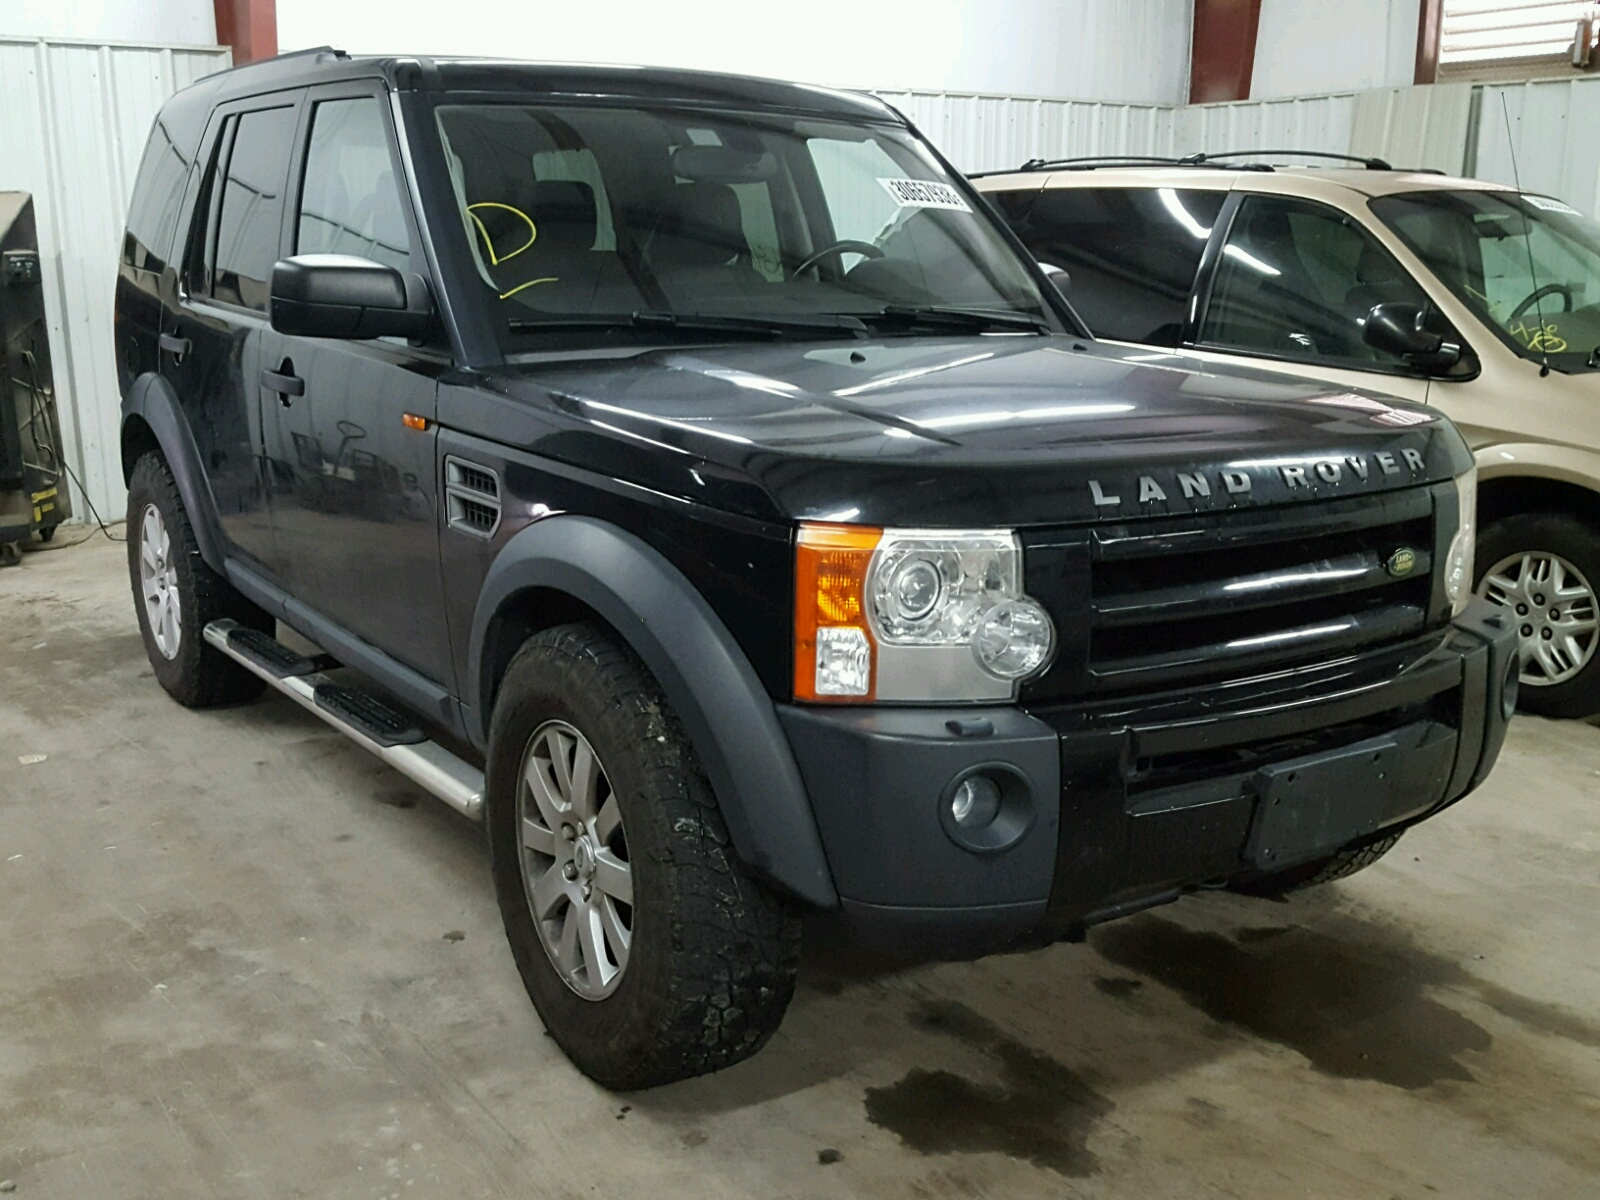 landrover tires for custom forums forum rover image land sale wheels